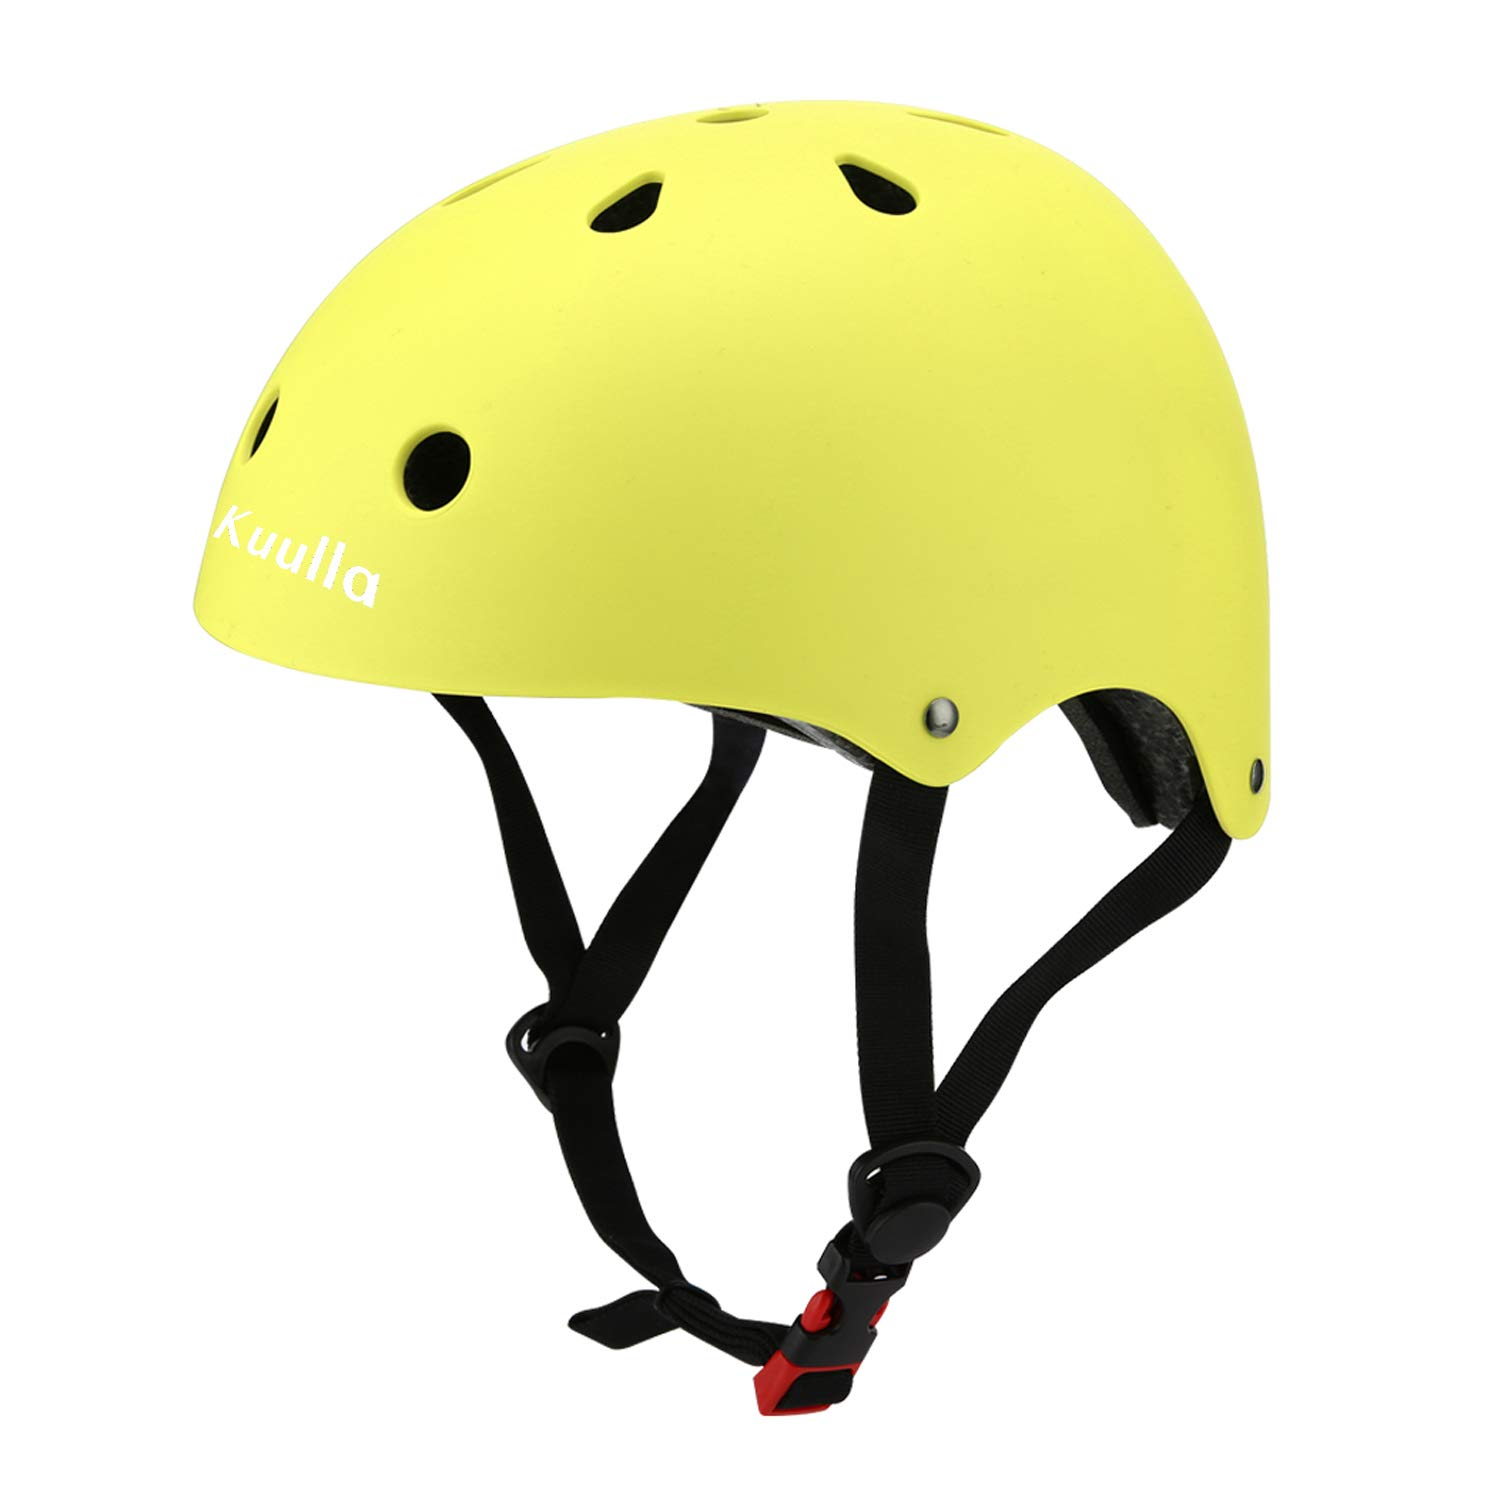 Yellow-Green 3 to 8 Years Old Kuulla Kids Toddler Protective Gear Set